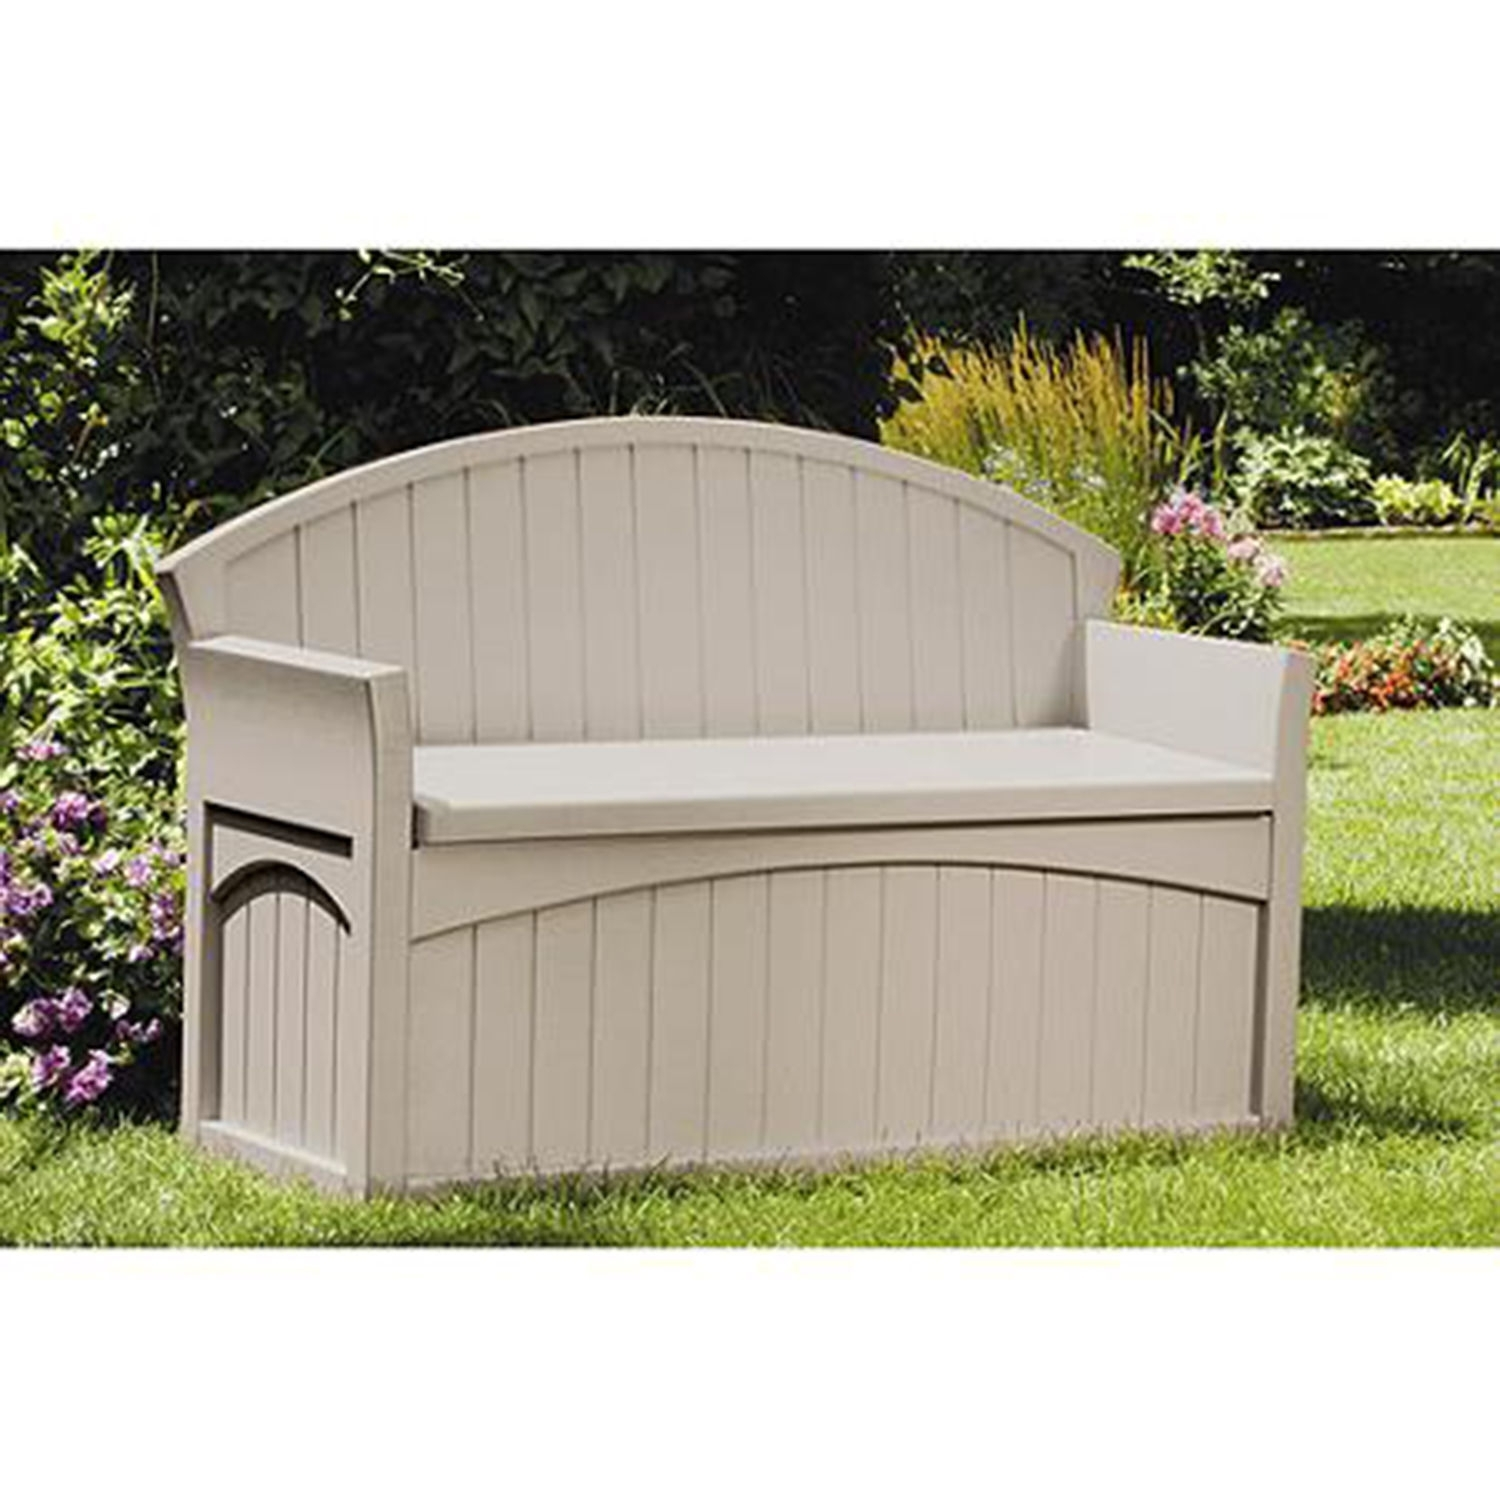 Image of: Patio Cushions Storage 50 Gallon Bench Box Deck Seat Pool Outdoor Pertaining To Cushion Boxes Outdoor Furniture How To Buy Cushion Boxes Outdoor Furniture